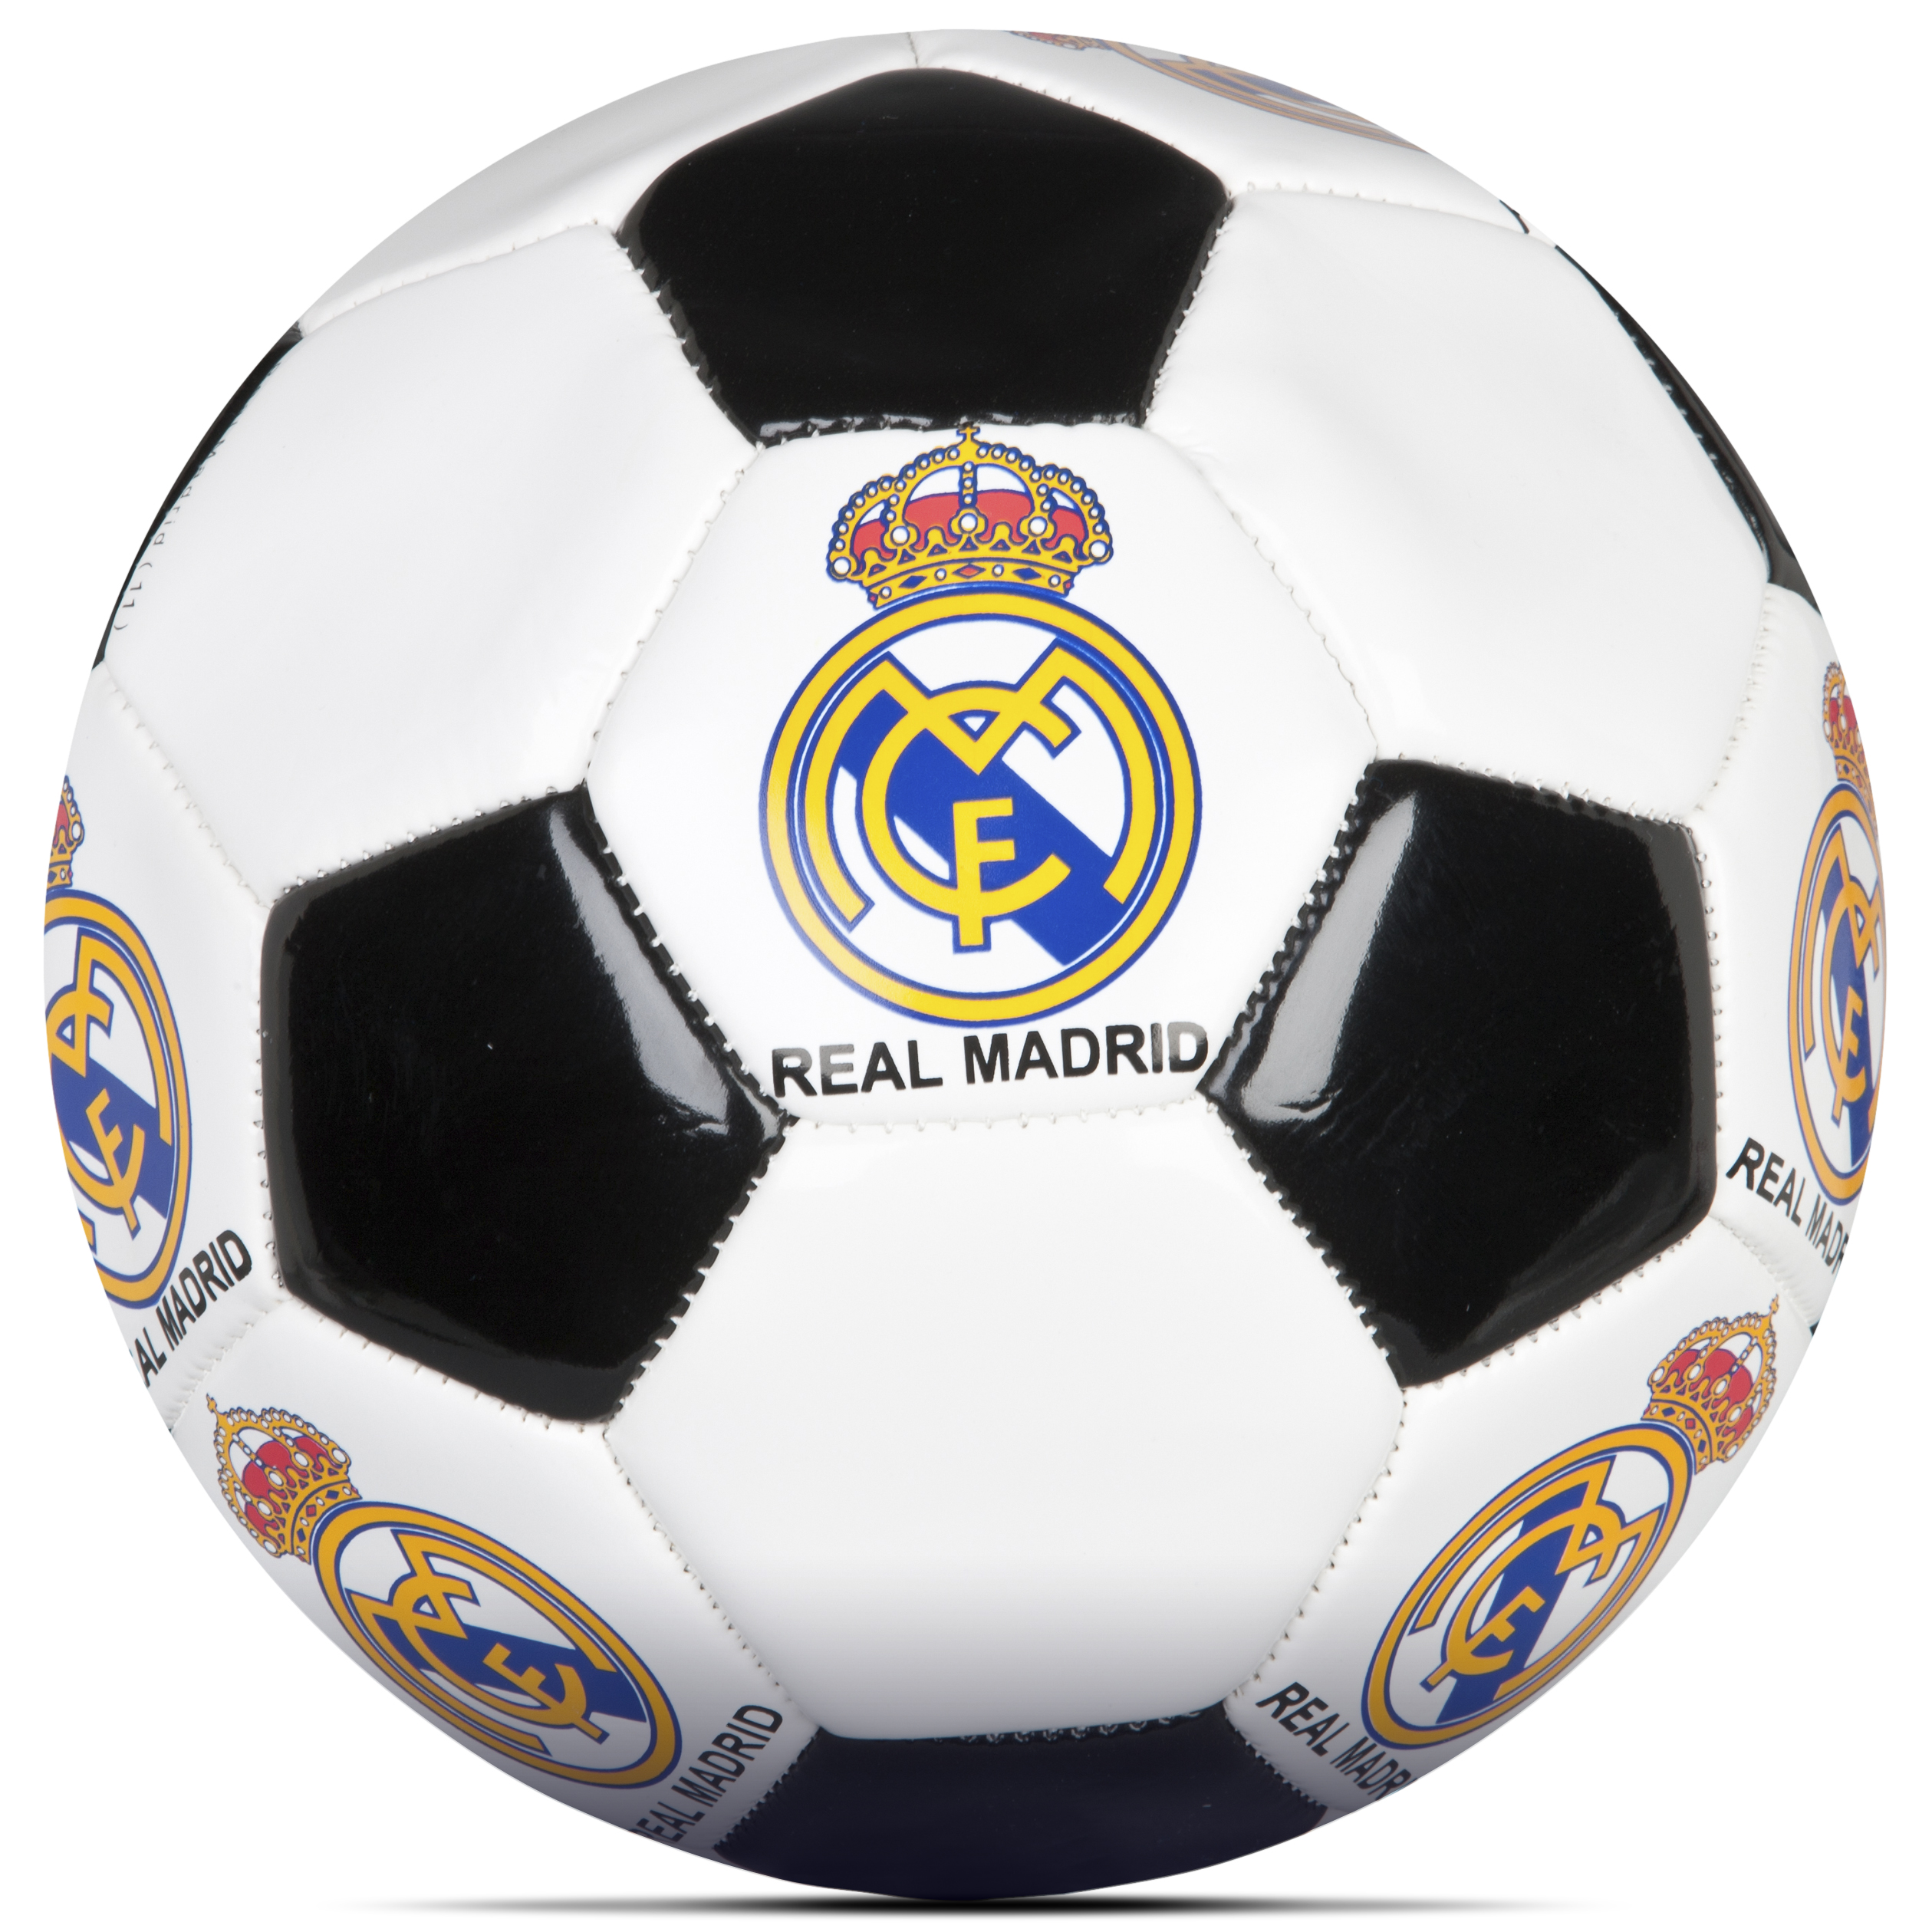 Real Madrid Clasic Football - White/Black